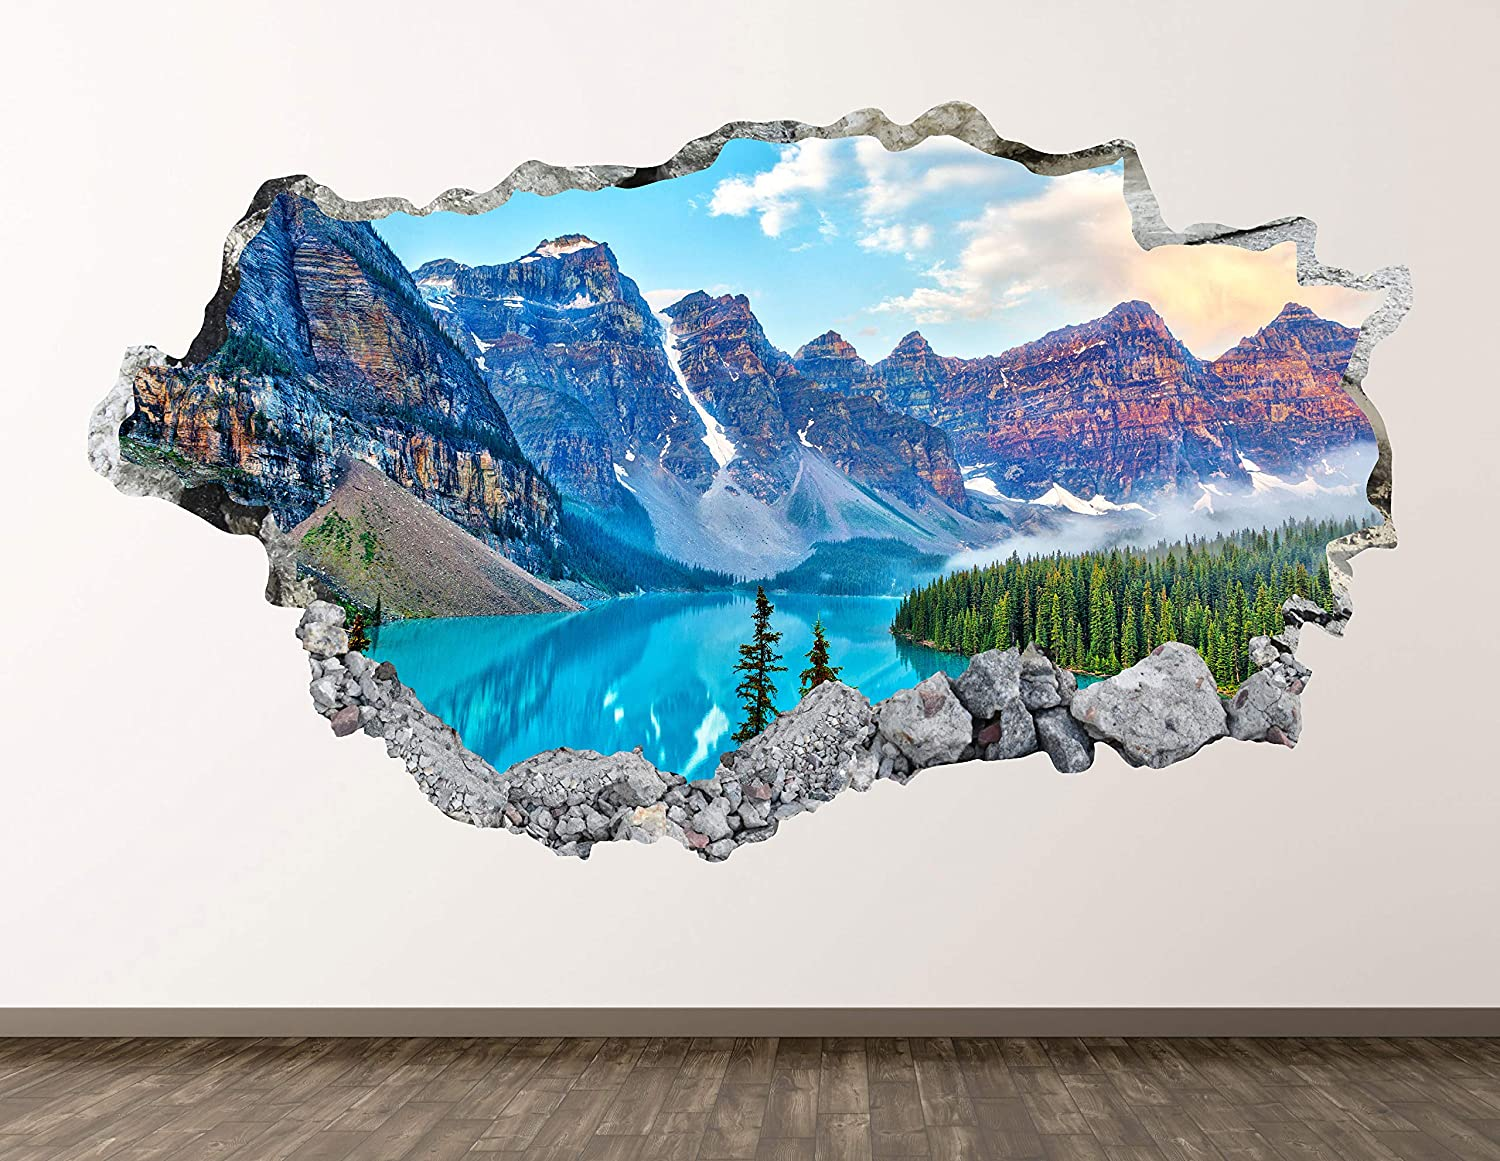 """Mountain Landscape Wall Decal Art Decor 3D Smashed Canadian Rockies Sticker Poster Kids Room Mural Custom Gift BL534 (30""""W x 18""""H)"""